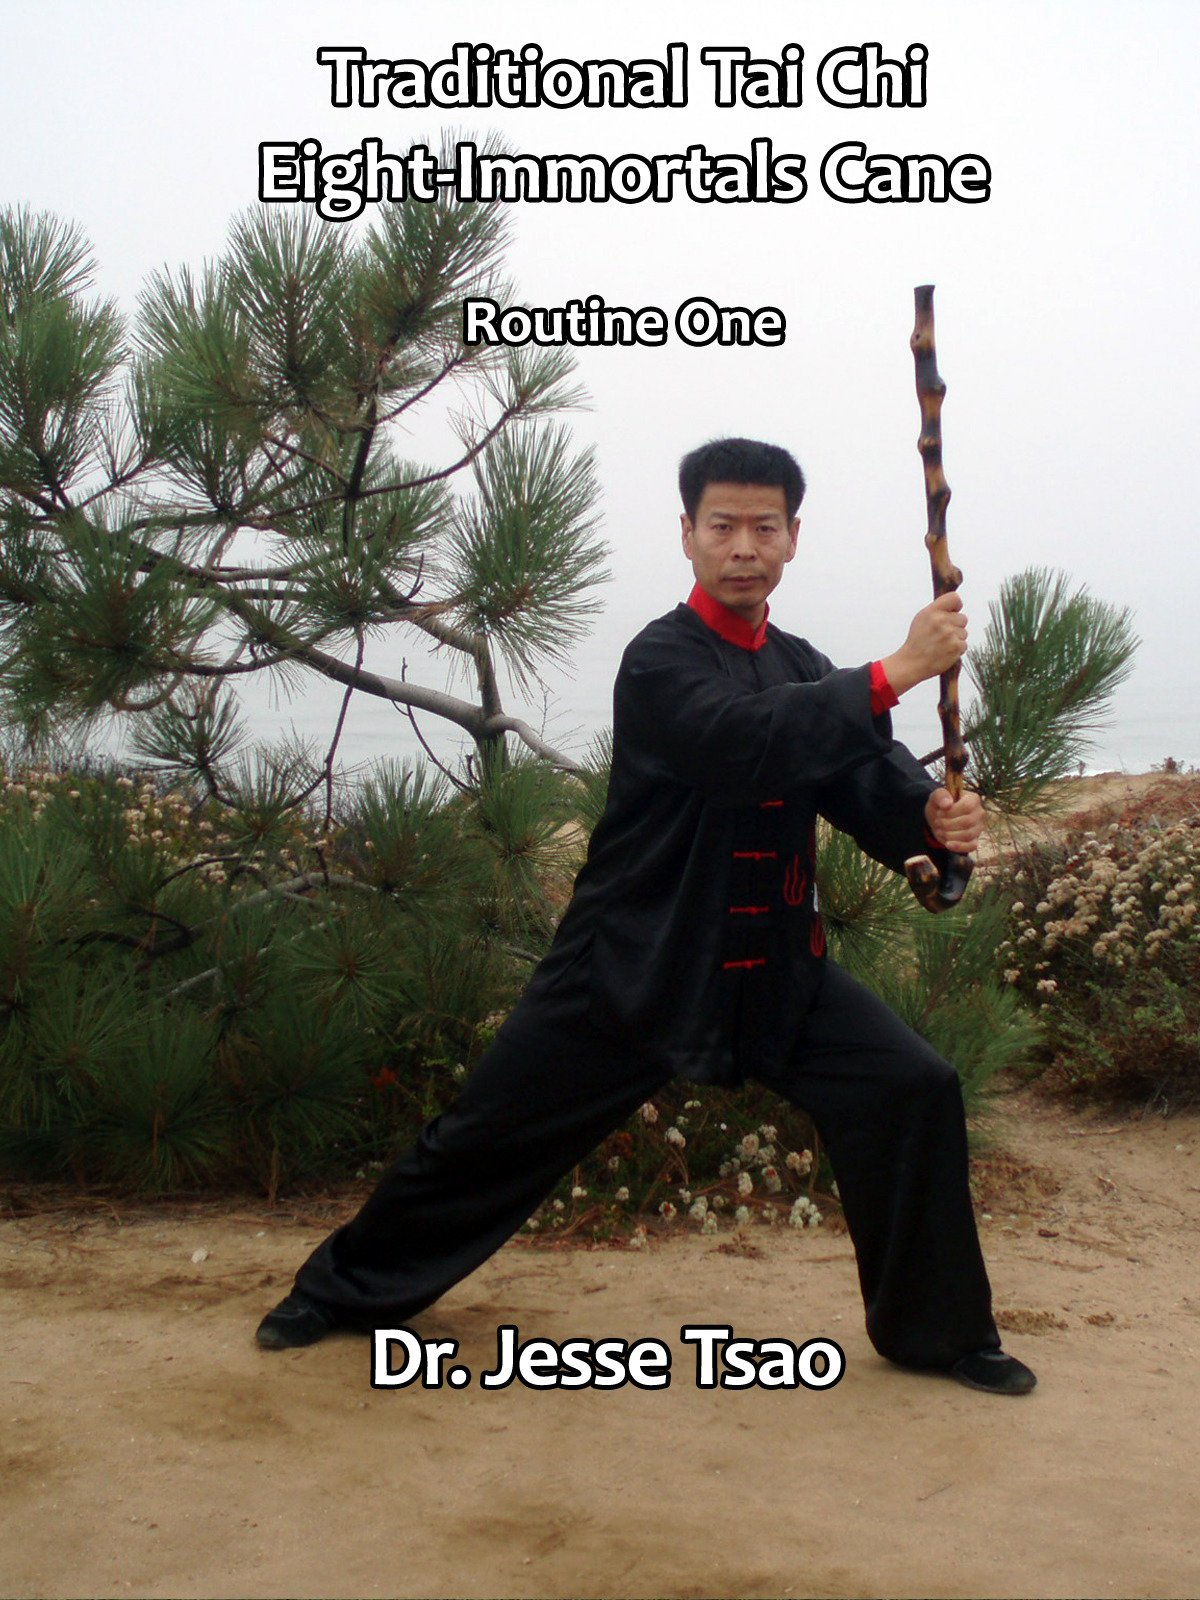 Traditional Tai Chi Eight Immortals Cane Routine One